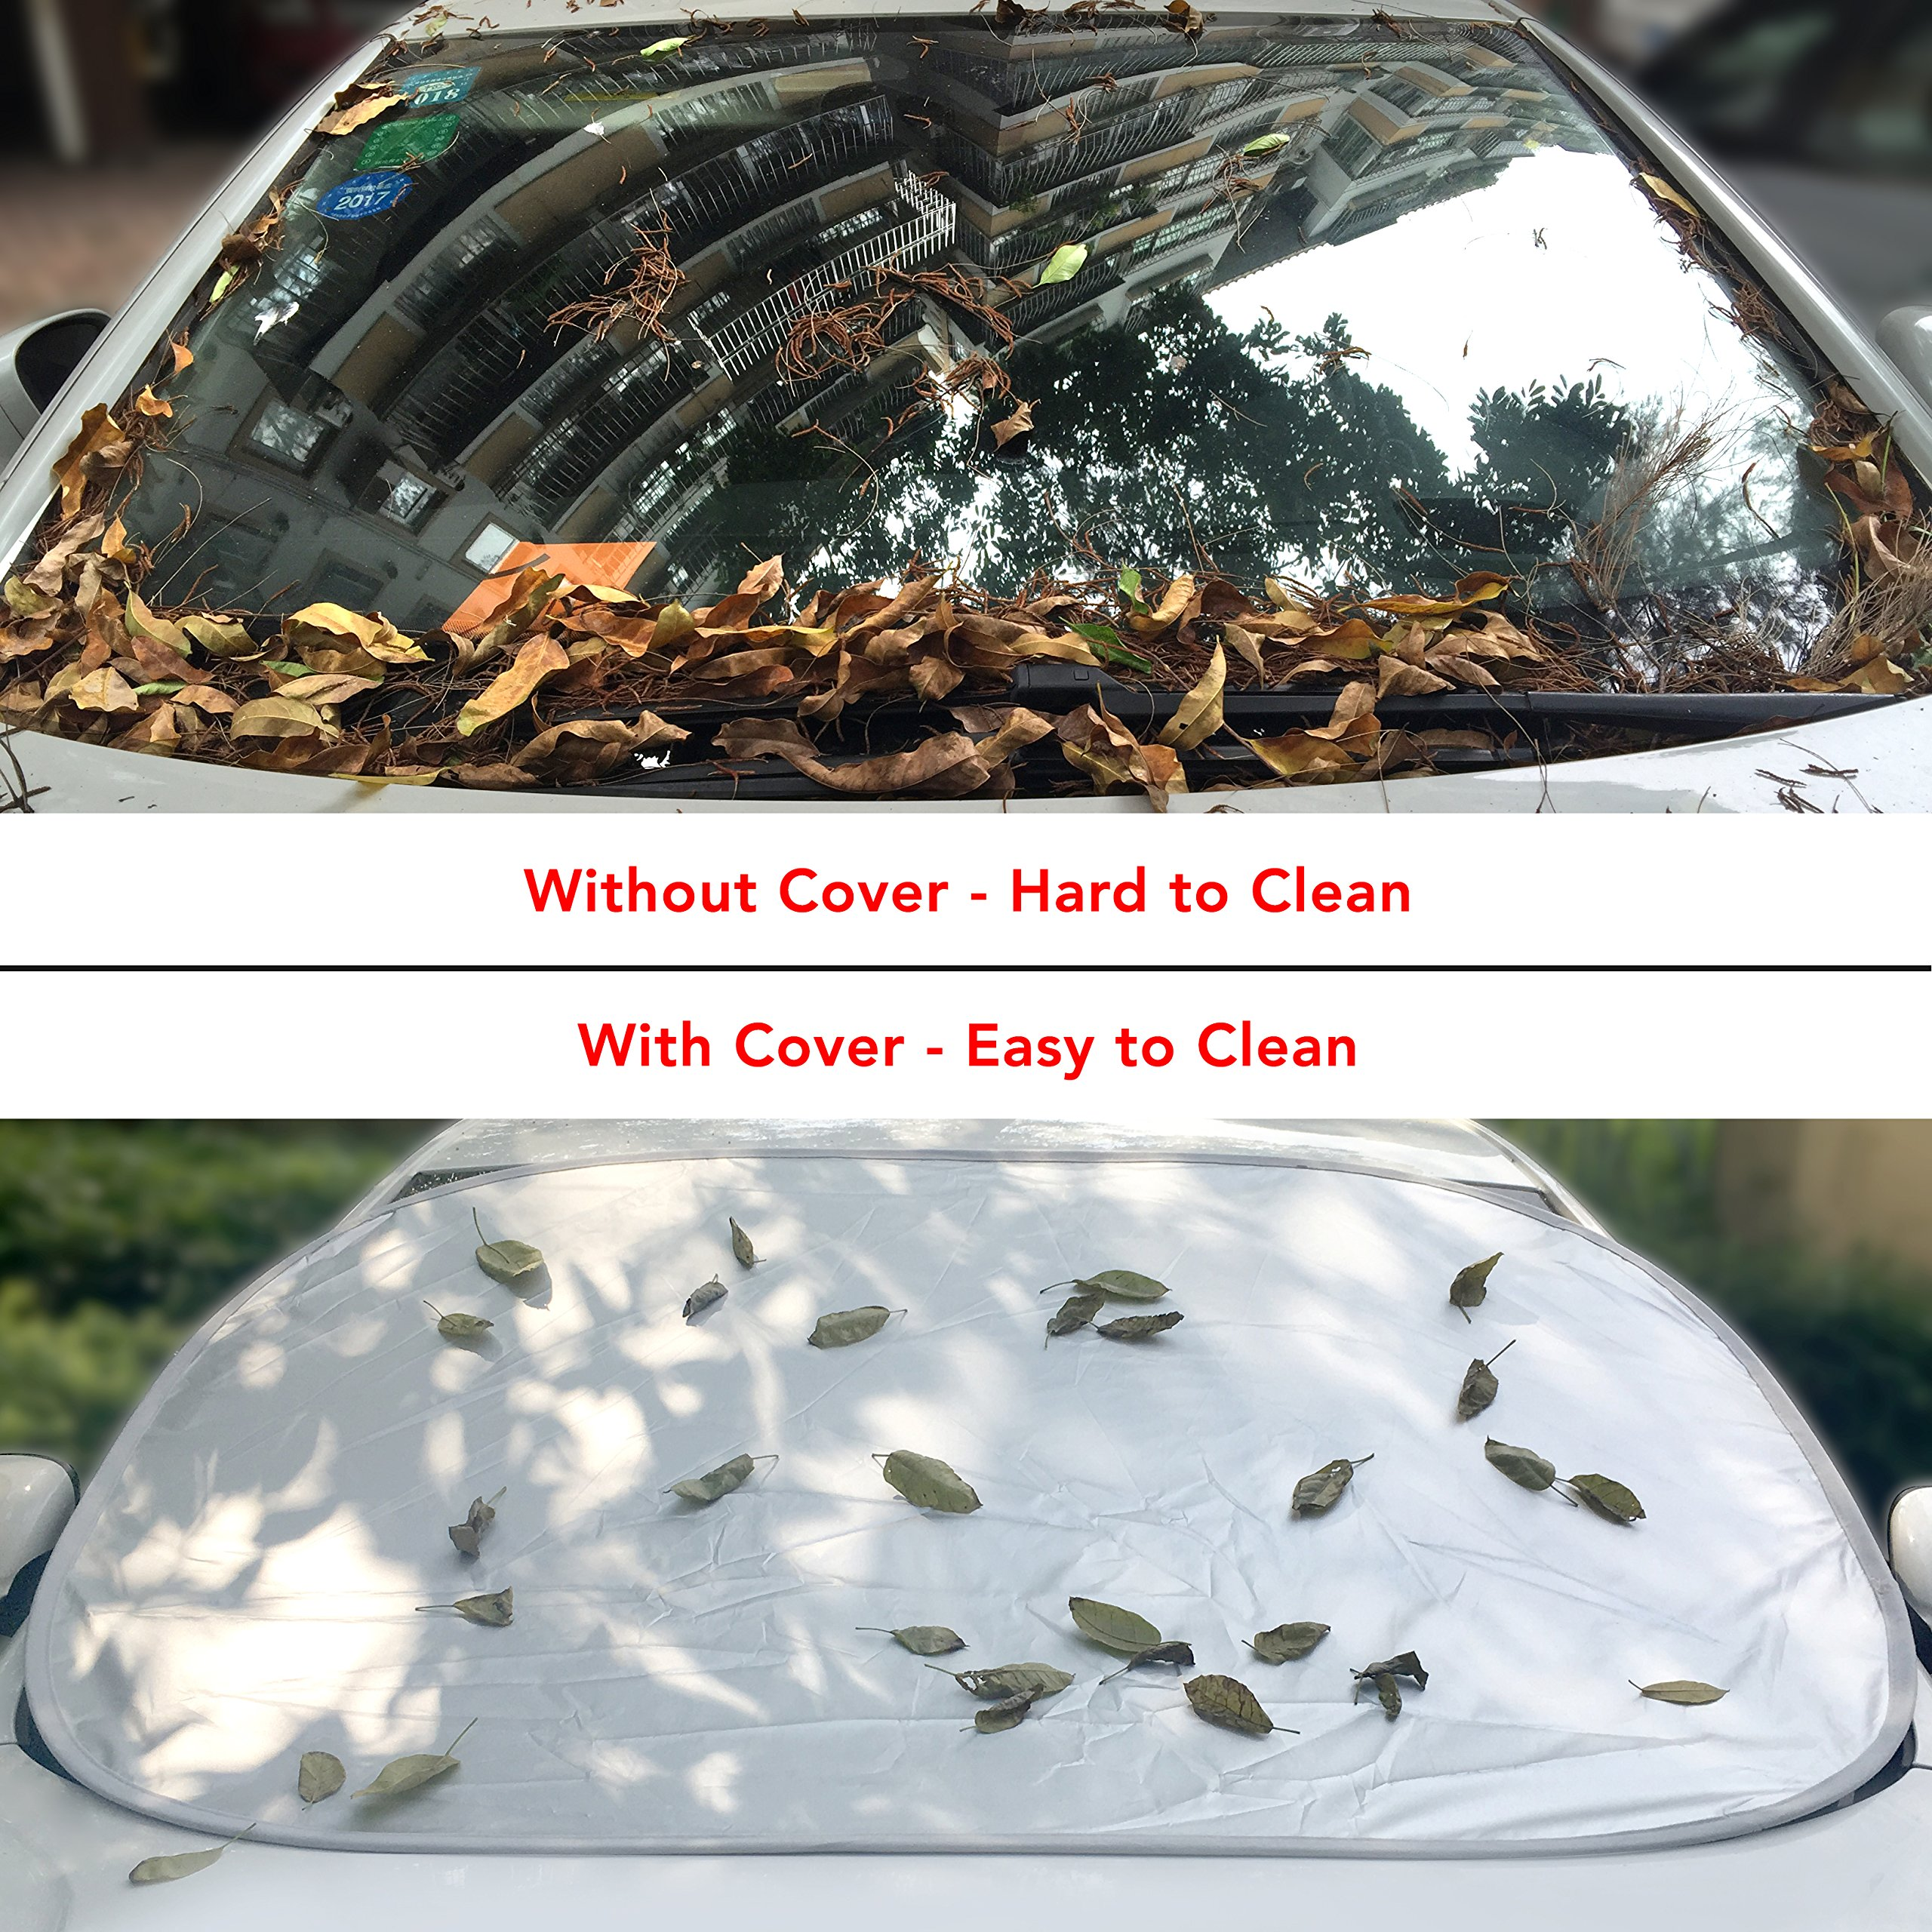 Quick Setup and Fold within 5 Seconds 139 x 103 cm Snow Cover Sun Shades Fallen Leaves and Others Ice LykusSource Car Windscreen Cover Frost Protect Against Snow Standard Size